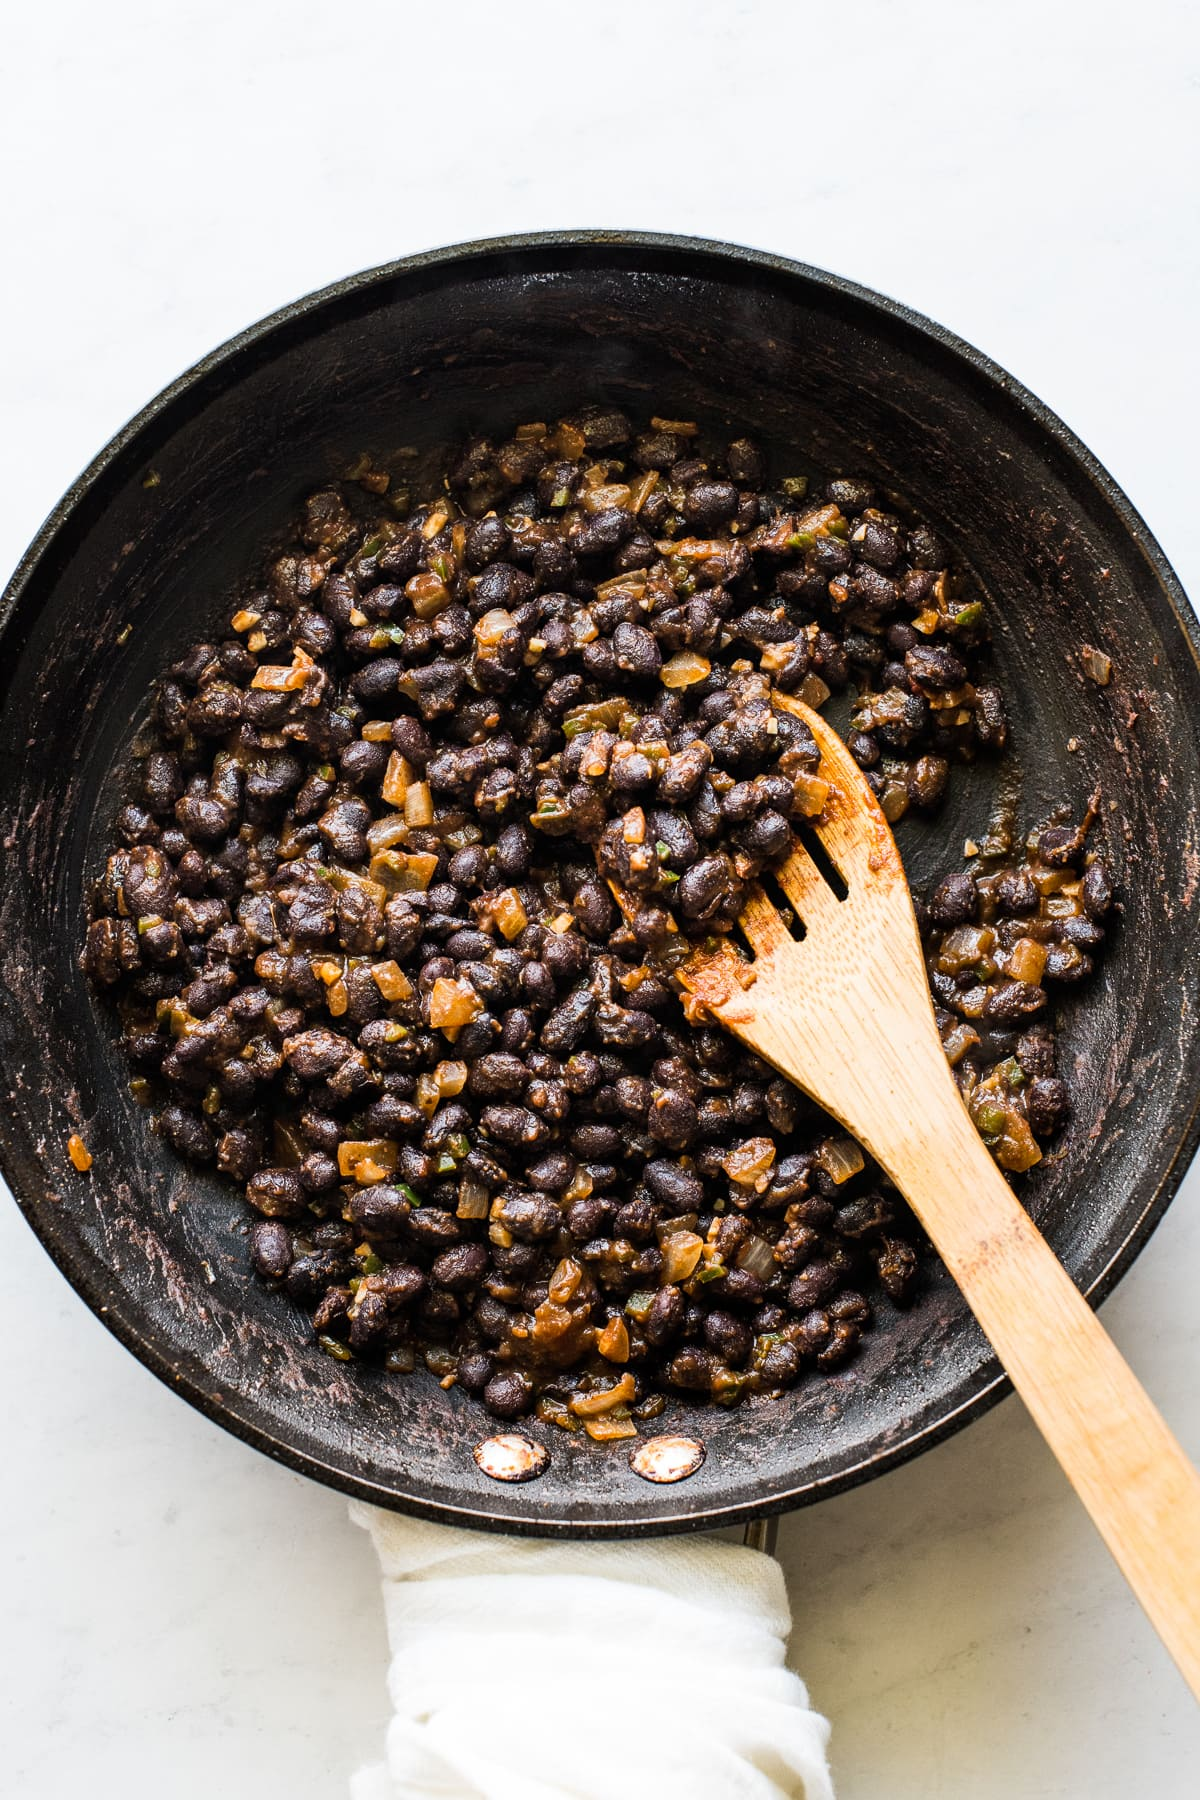 Black beans cooking in a skillet with spices and seasonings.